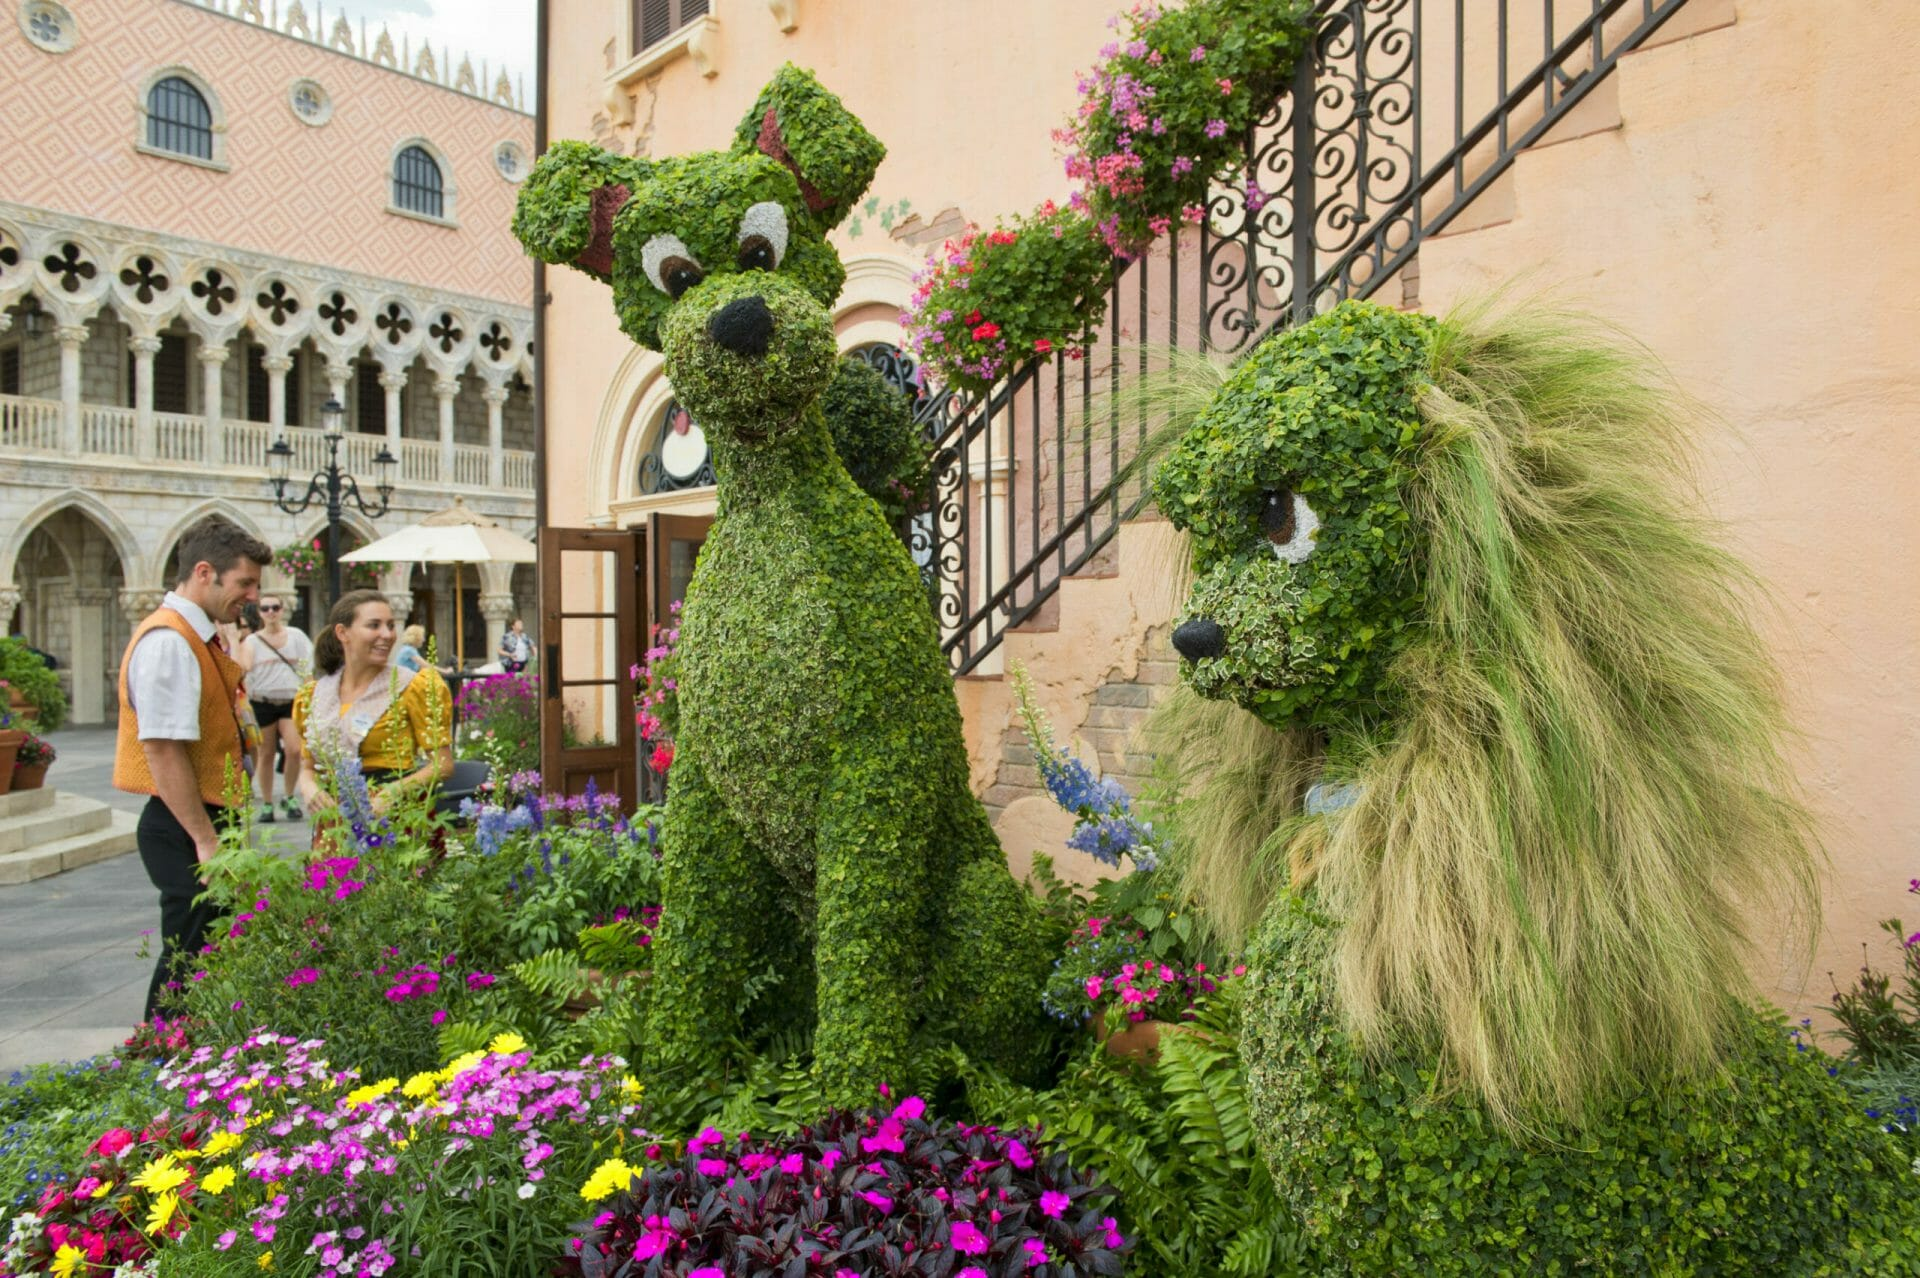 2021 Taste of Epcot International Flower & Garden Festival-New Global Gardens